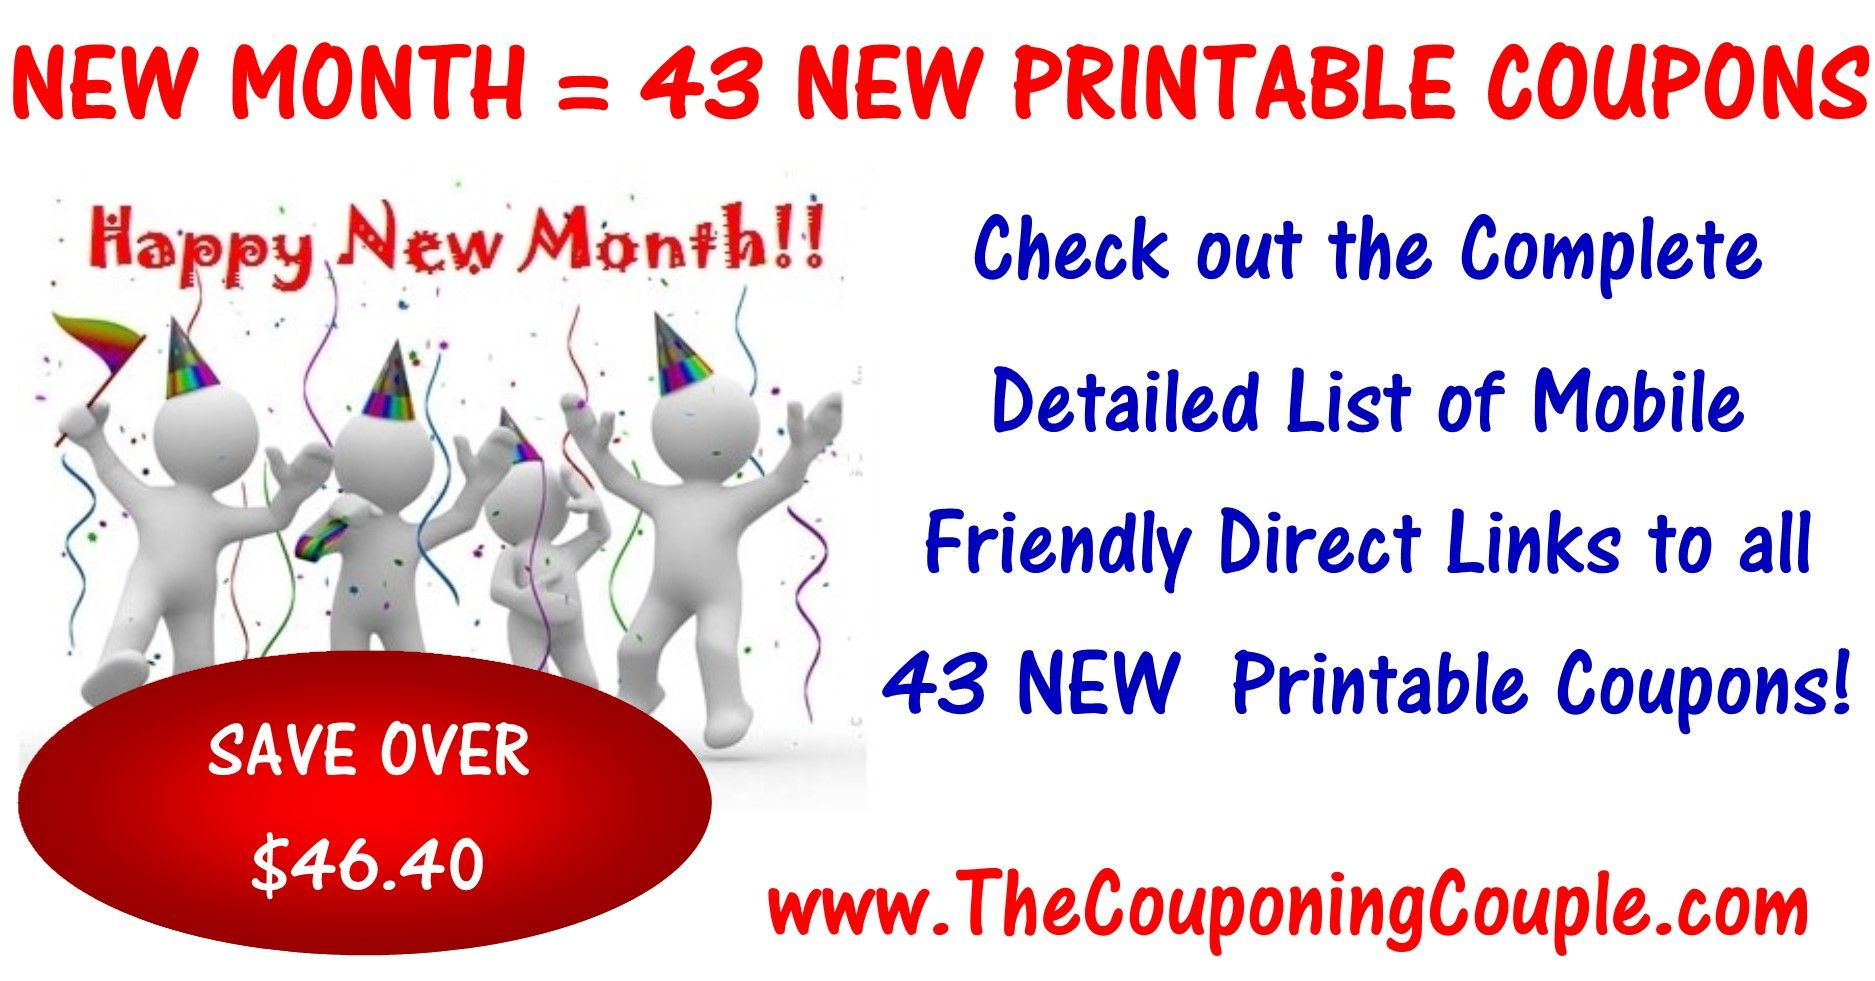 ***NEW MONTH = 43 NEW PRINTABLE COUPONS*** Check out the Complete Detailed List of Mobile Friendly Direct Links to all 43 NEW  Printable Coupons bu clicking the Picture Below ► http://www.thecouponingcouple.com/43-new-printable-coupons-to-start-november/  Use the SHARE button below the Picture to SHARE this Deal with your Family and Friends!  #Coupons #Couponing #CouponCommunity  Visit us at http://www.thecouponingcouple.com for more great posts!